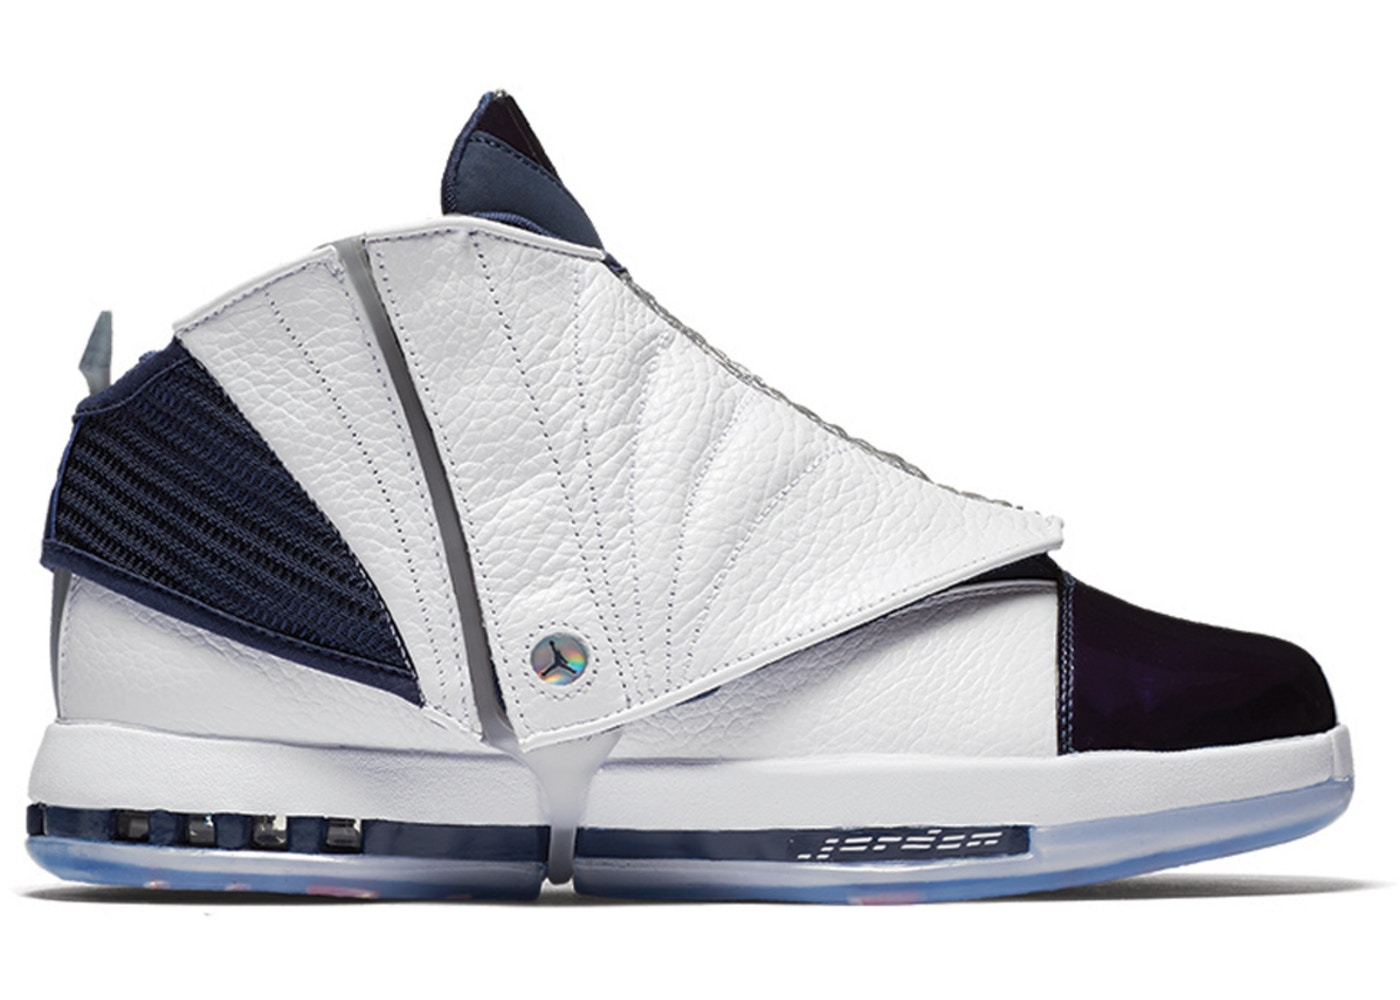 Nike Air Jordan 16 Retro White/Midnight Navy Size Men'S 9 [683075-106] - B7349